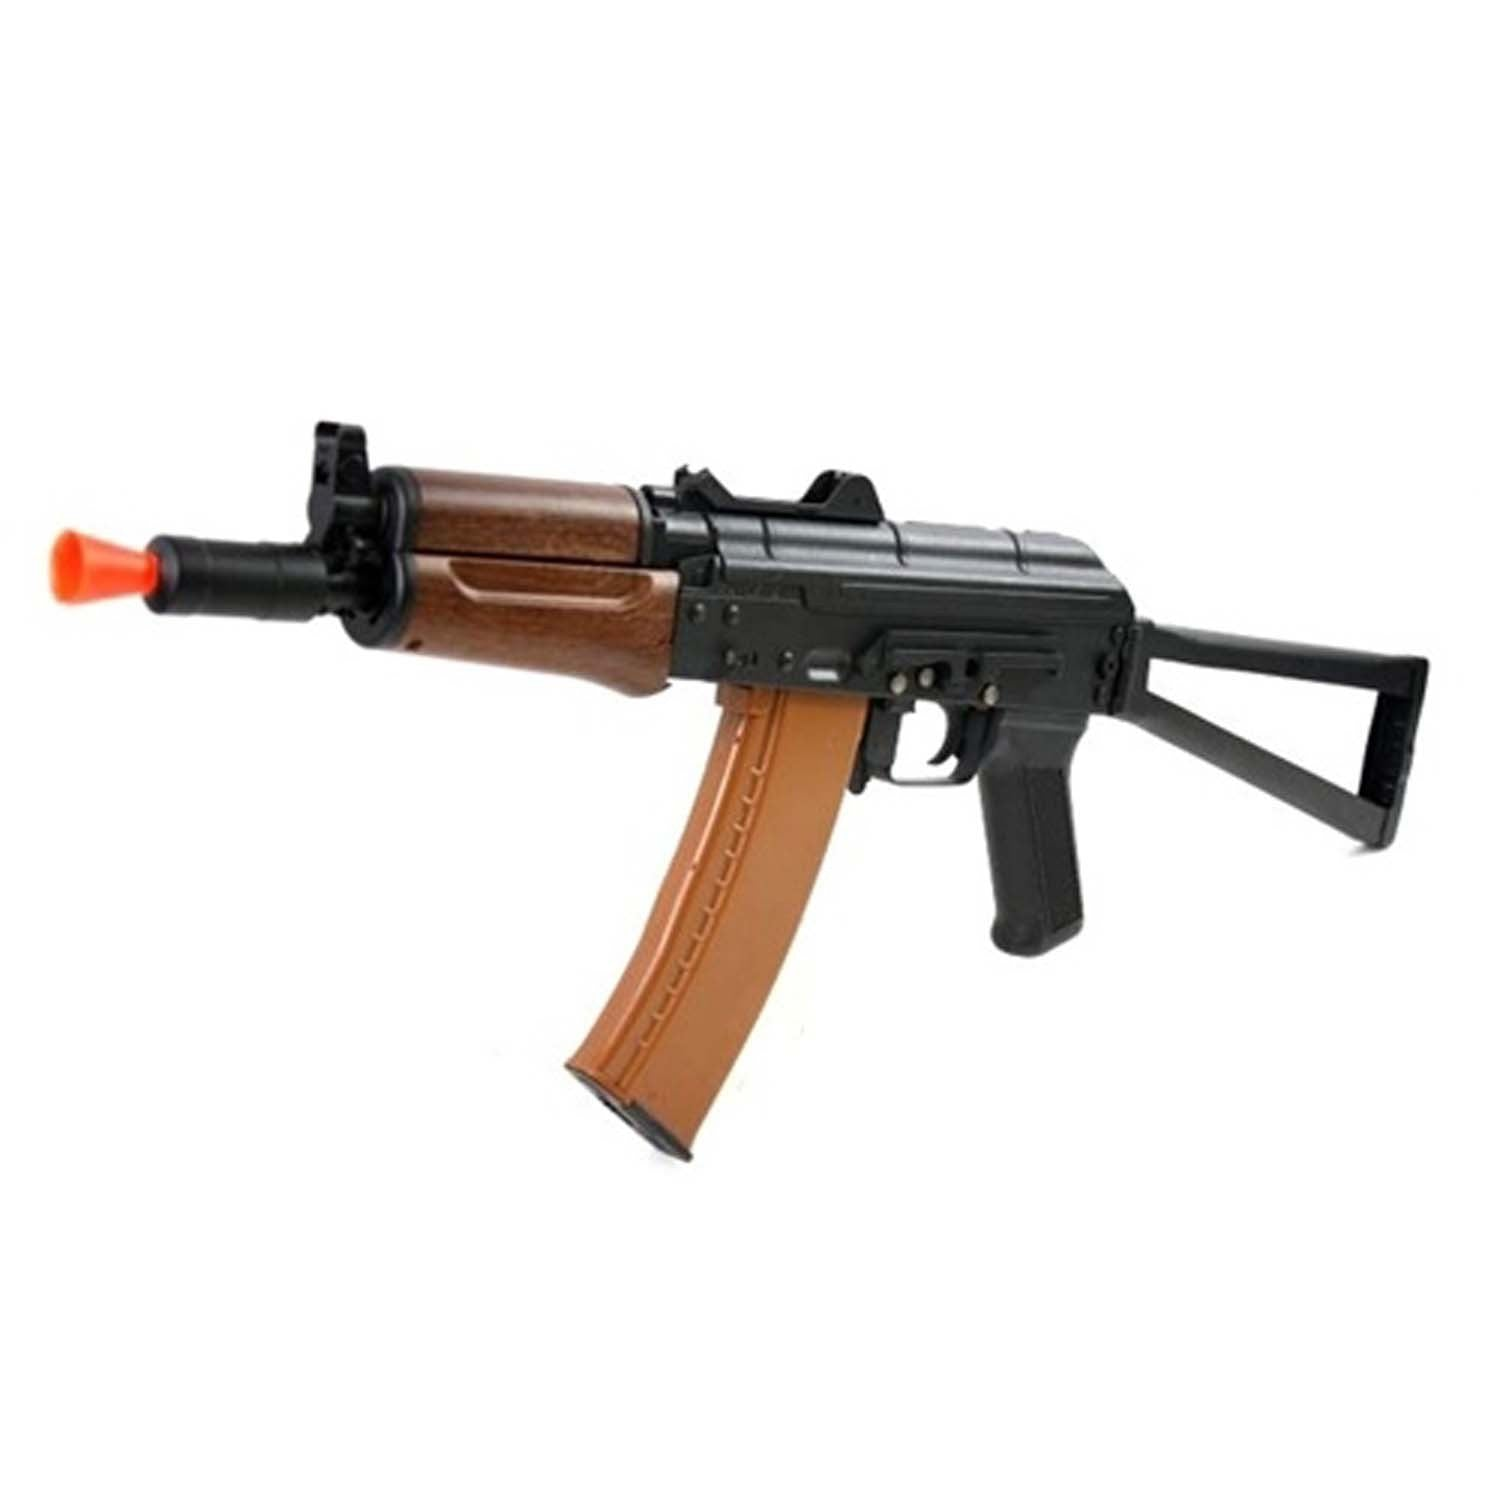 DBoys/Kalash AK-74UN Full Metal AEG Rifle - FPS: 370-390 RPS: 13-14 Metal Reciever Metal Side-folding Stock Ver. III Metal Gearbox Metal Barrel Assembly Battery & Charger included Real Wood Handgaurds Effective Range: 170-180 ft. 600 Rd. High Cap Polymer Mag